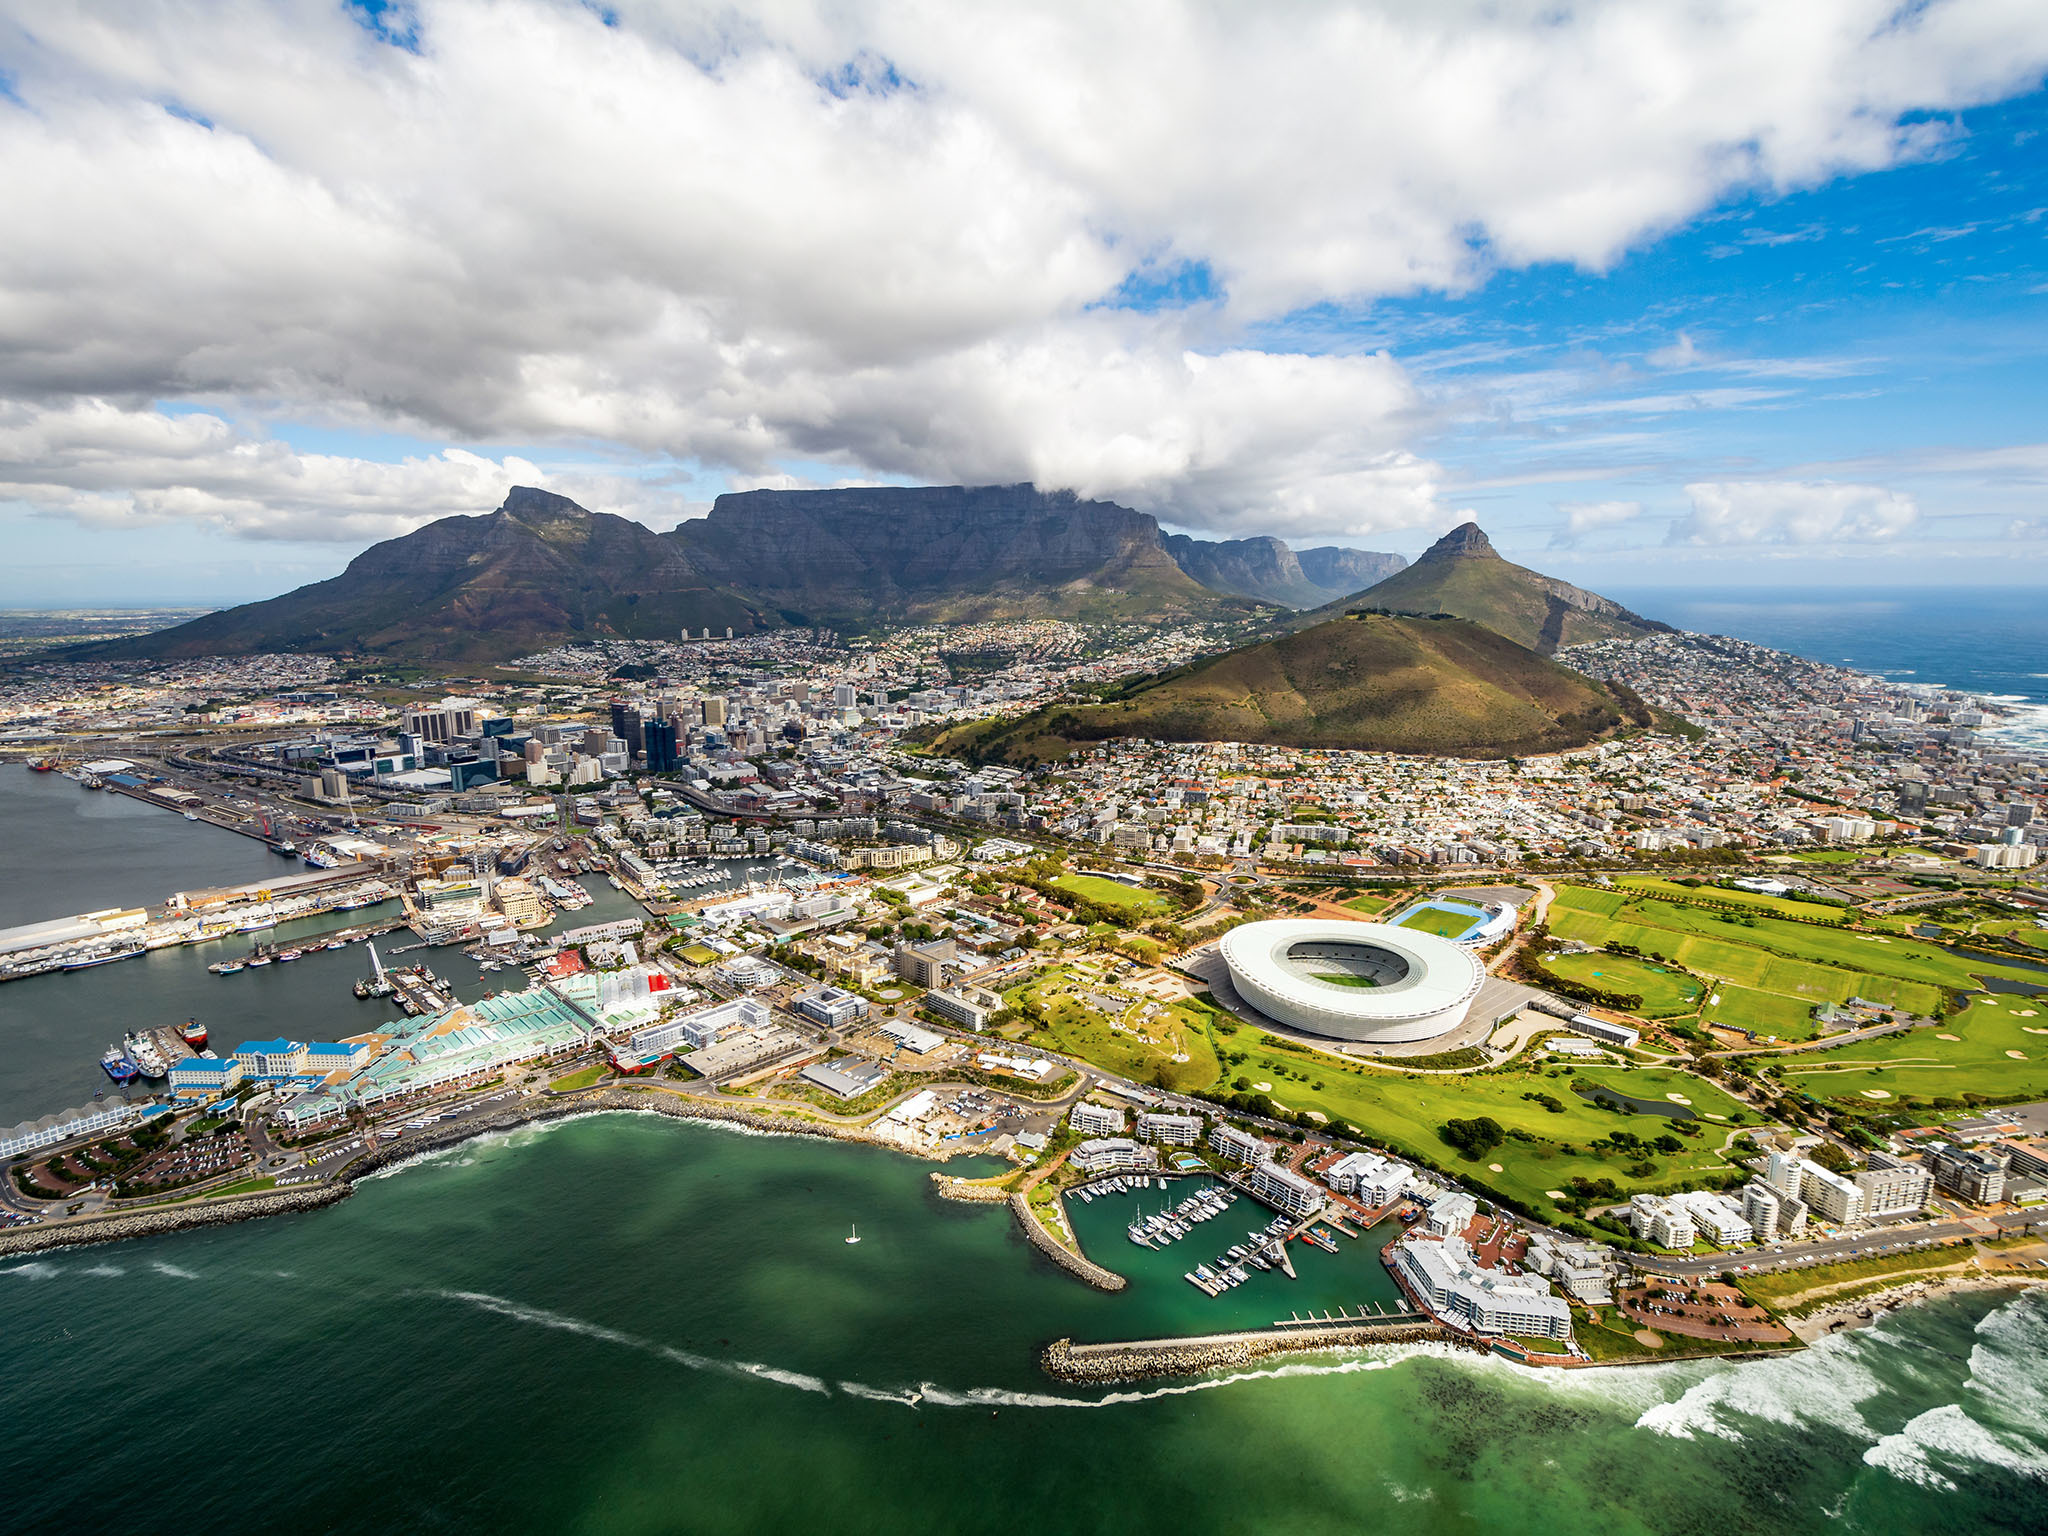 South Africa may not reopen to tourists until 2021